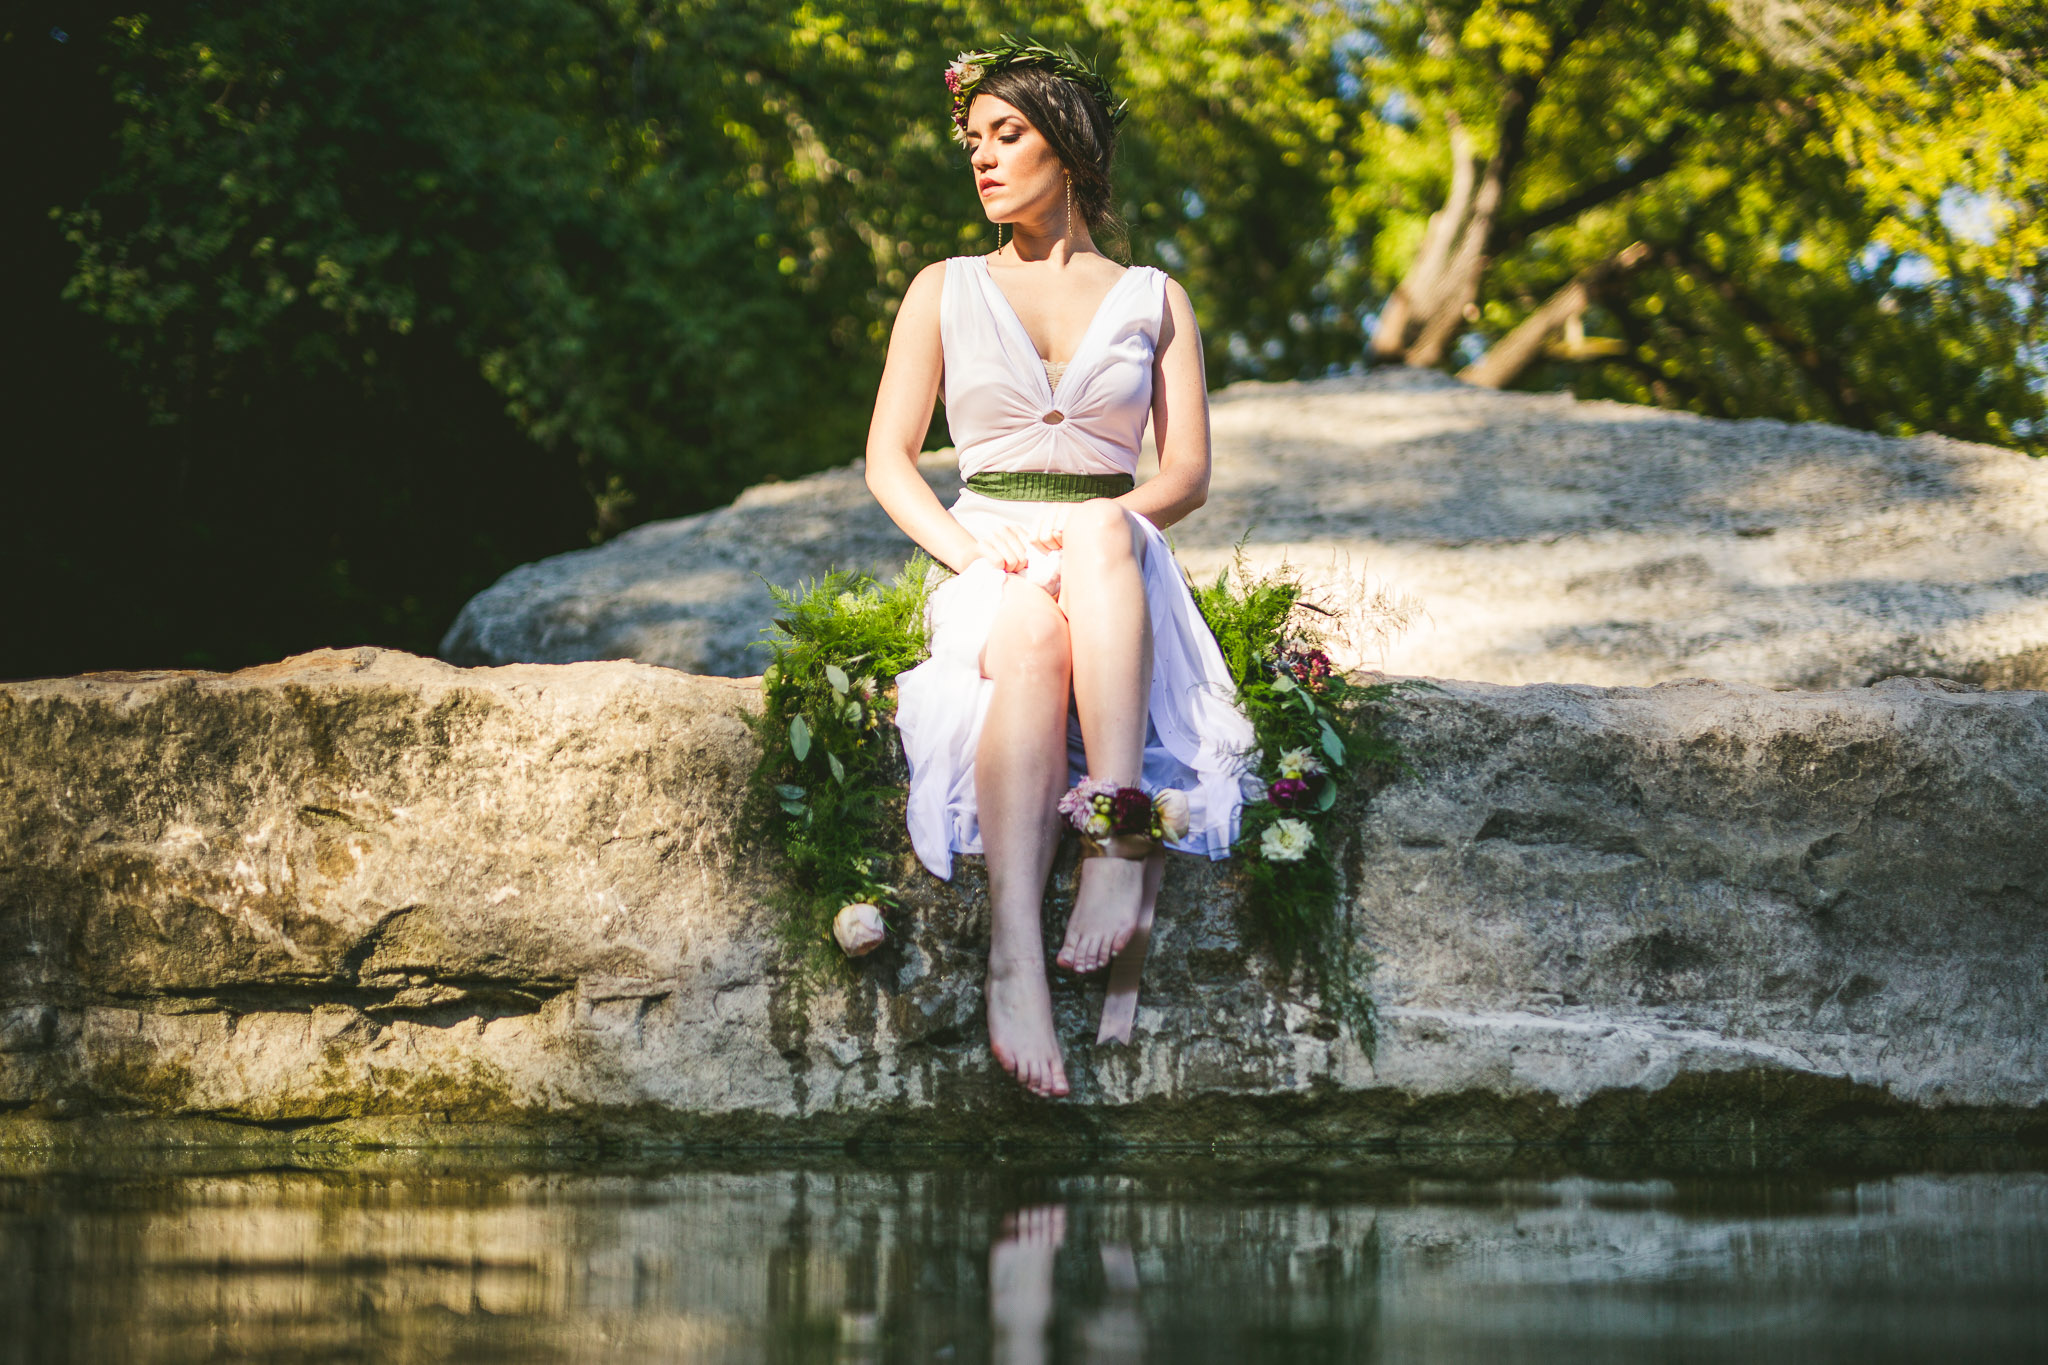 four-elements-styled-shoot-happydaymedia-web-140